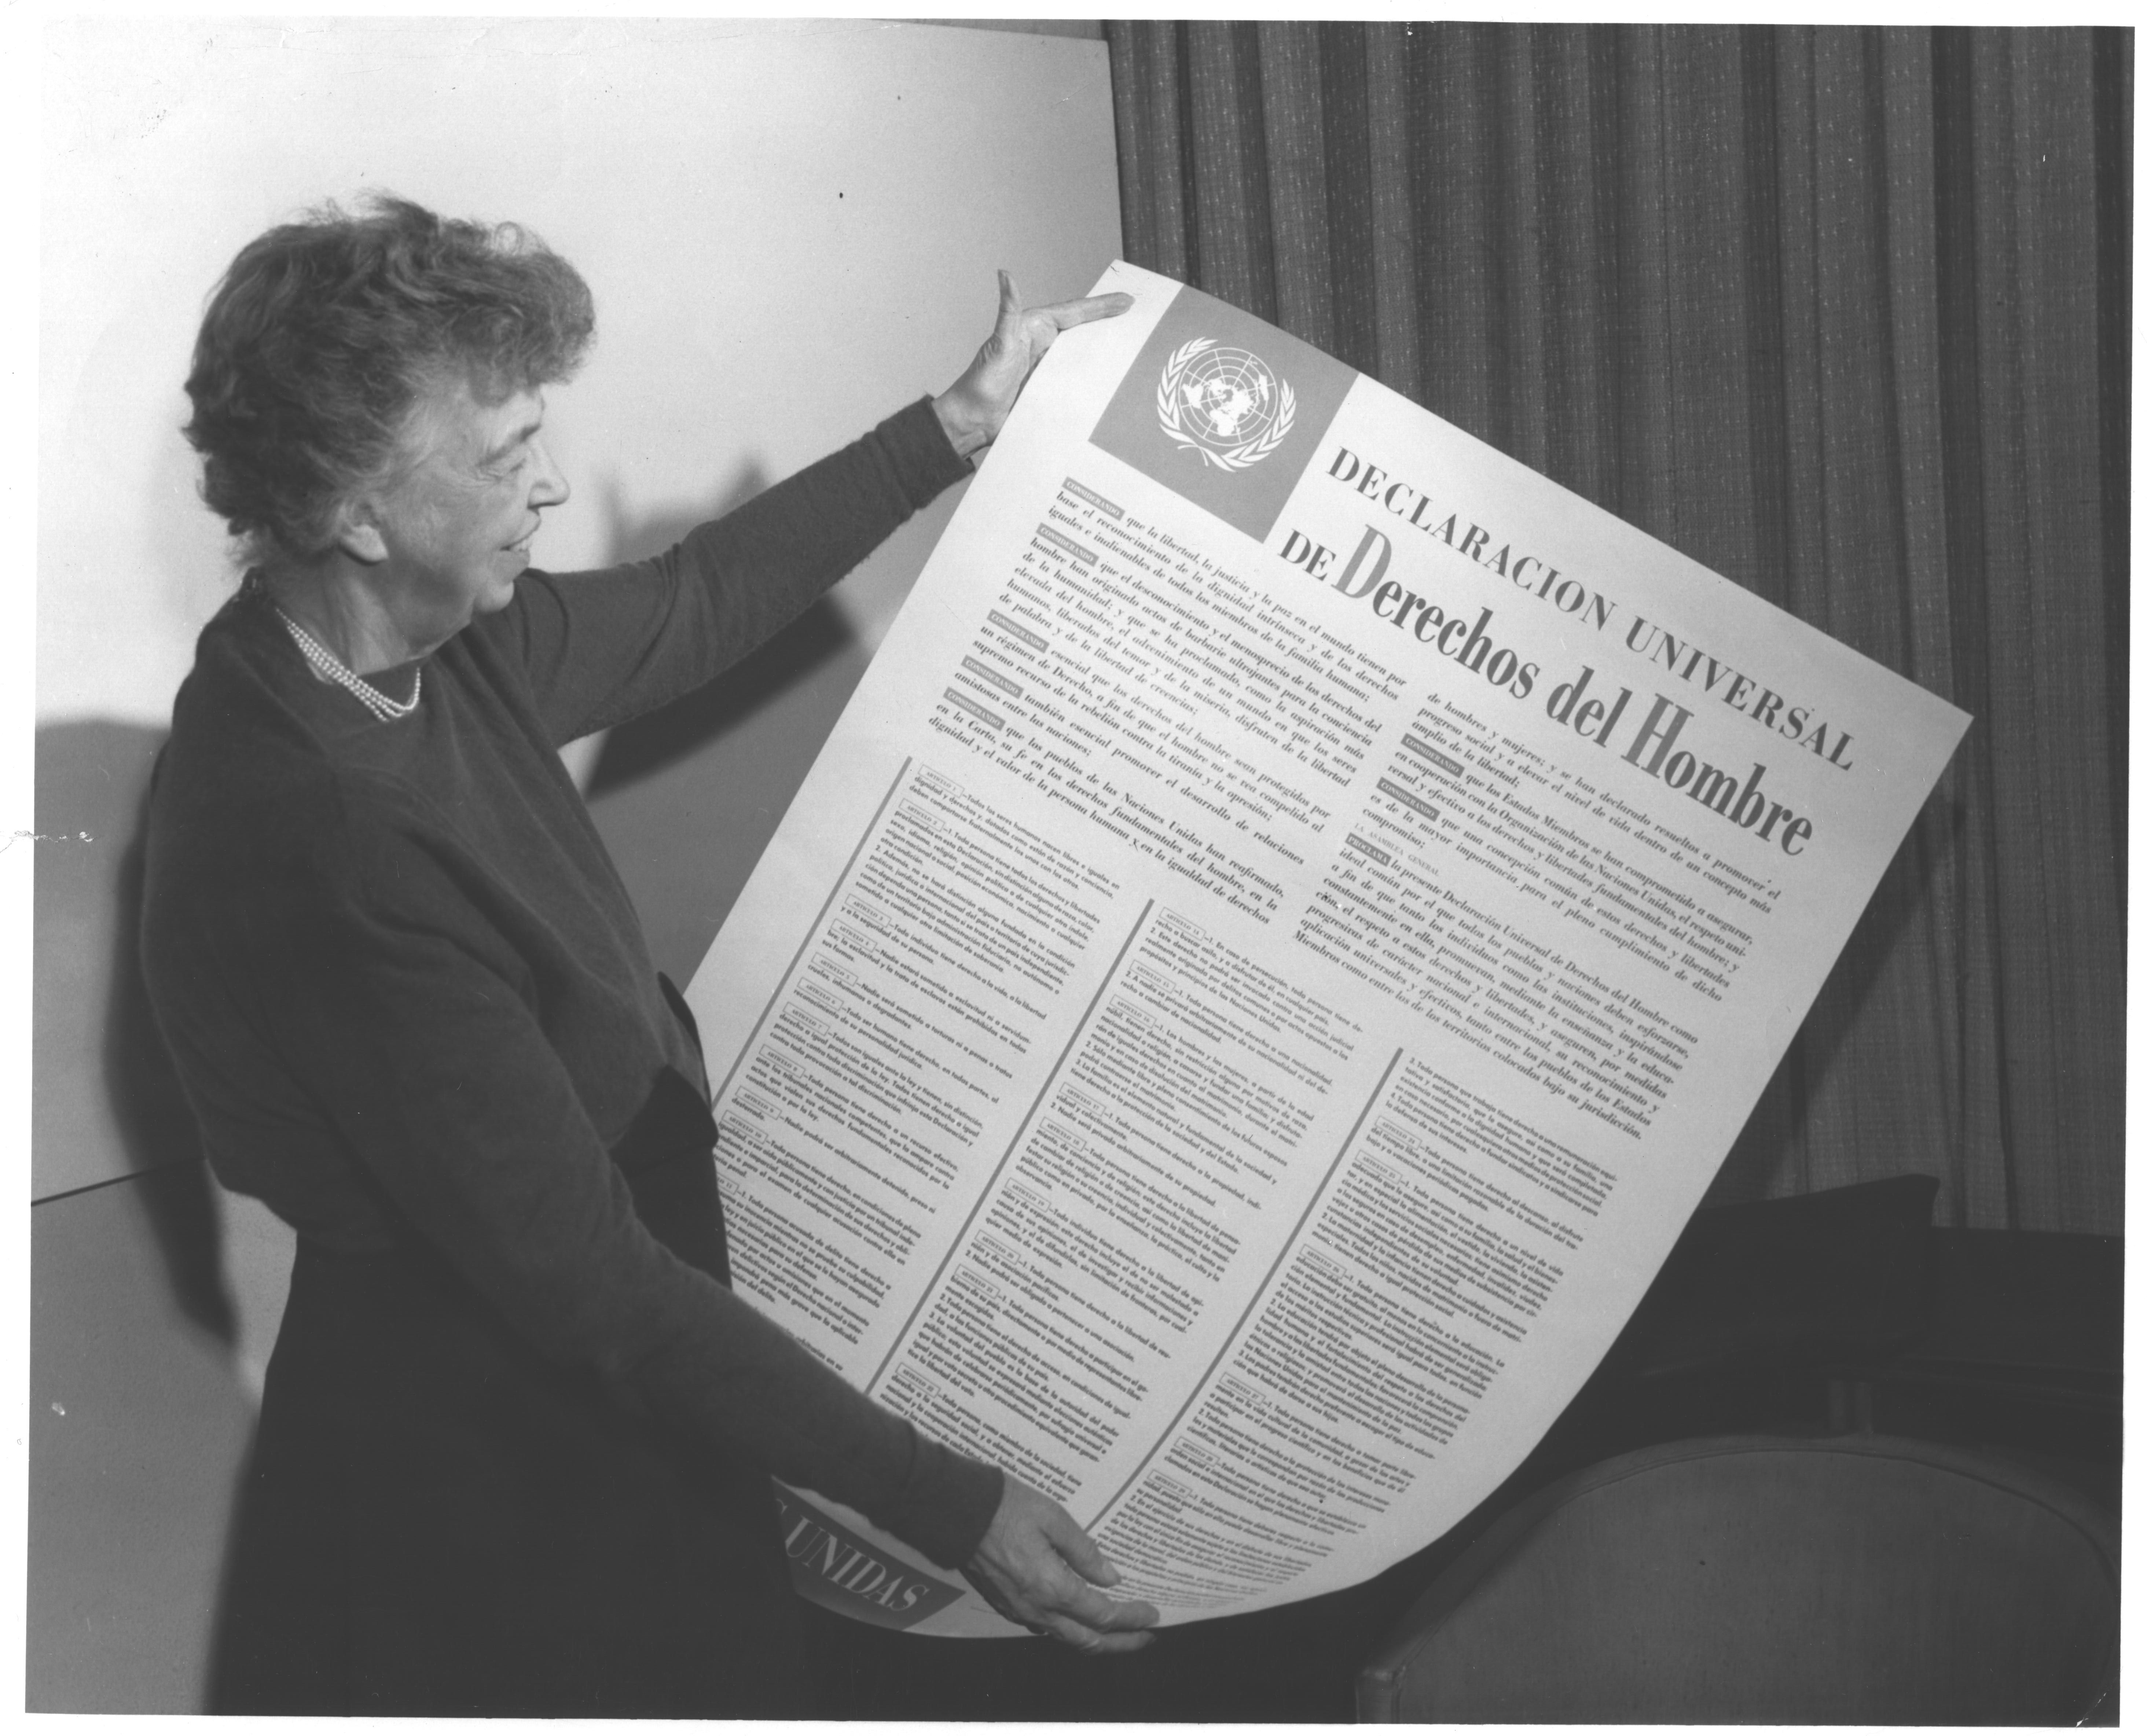 birth of the un s human rights declaration eleanor roosevelt  birth of the un s human rights declaration eleanor roosevelt regarded the universal declaration of human rights